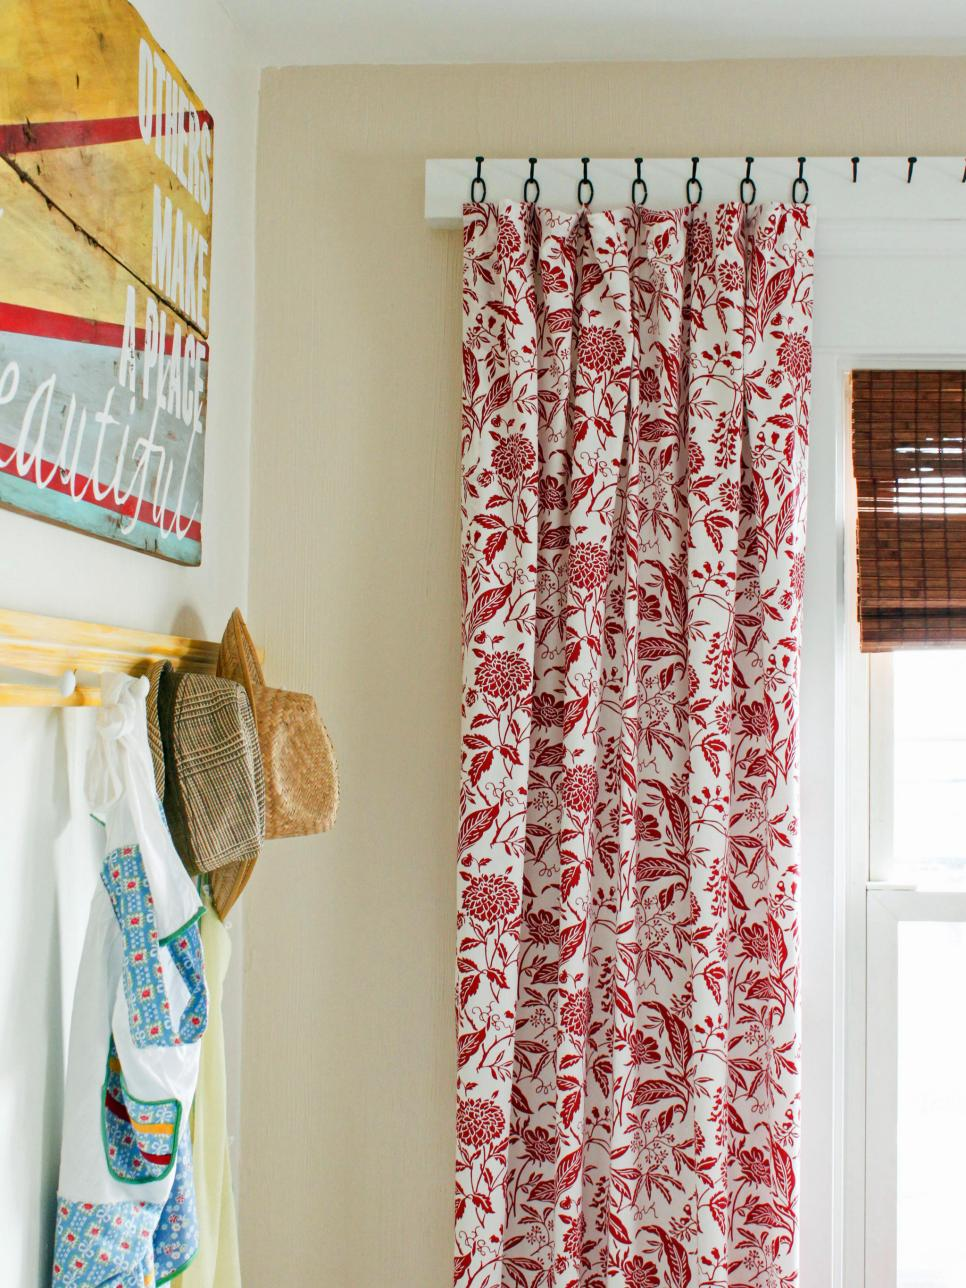 Window Treatment Ideas HGTV - Curtain drapery ideas